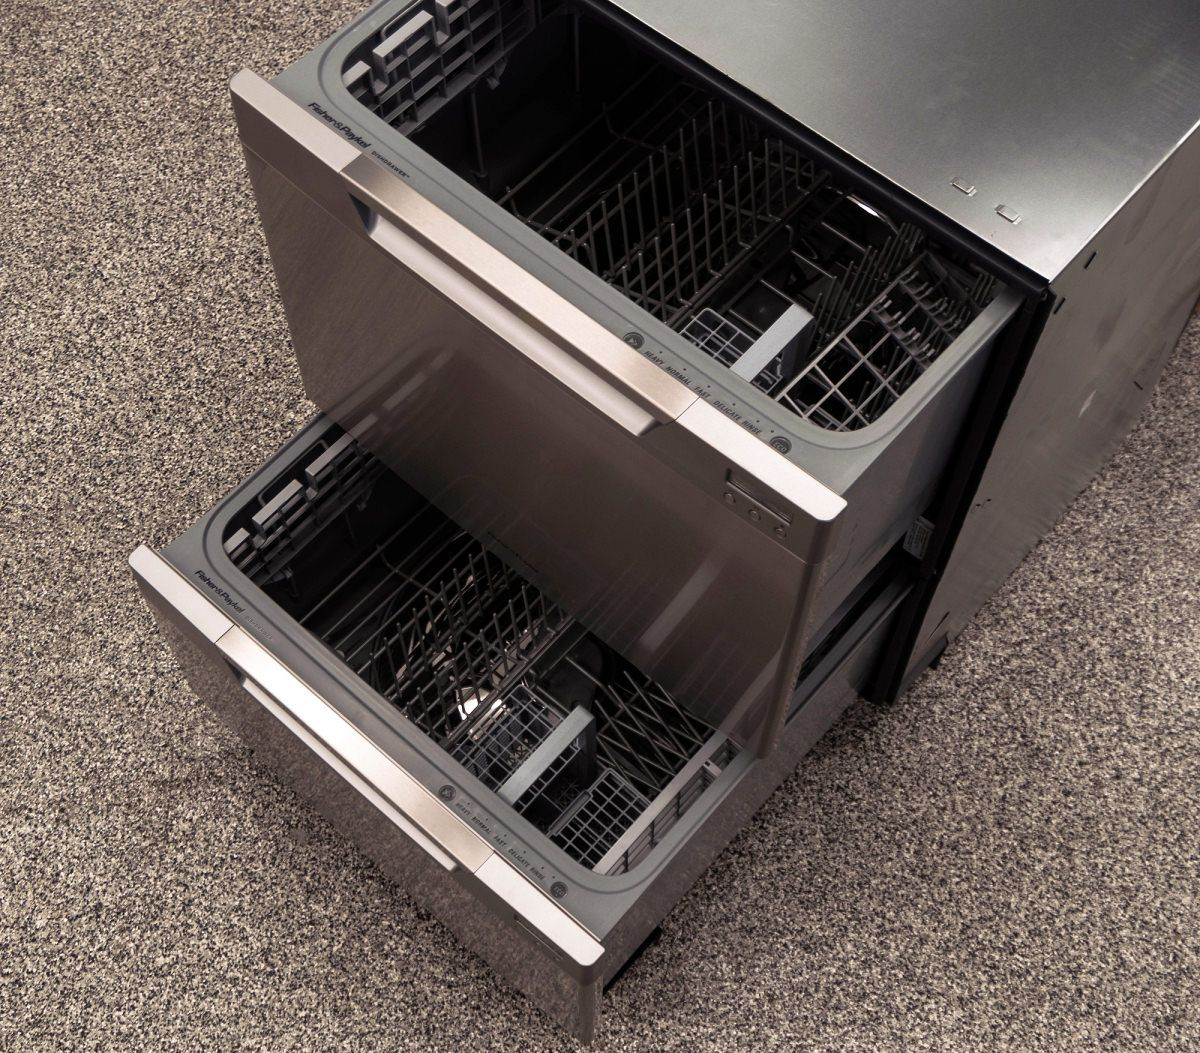 drawer boasts posts feature largest load dishwashers myway mywaytm dishwasher from third how advice the to remodelista style bosch newest expert a rack called which